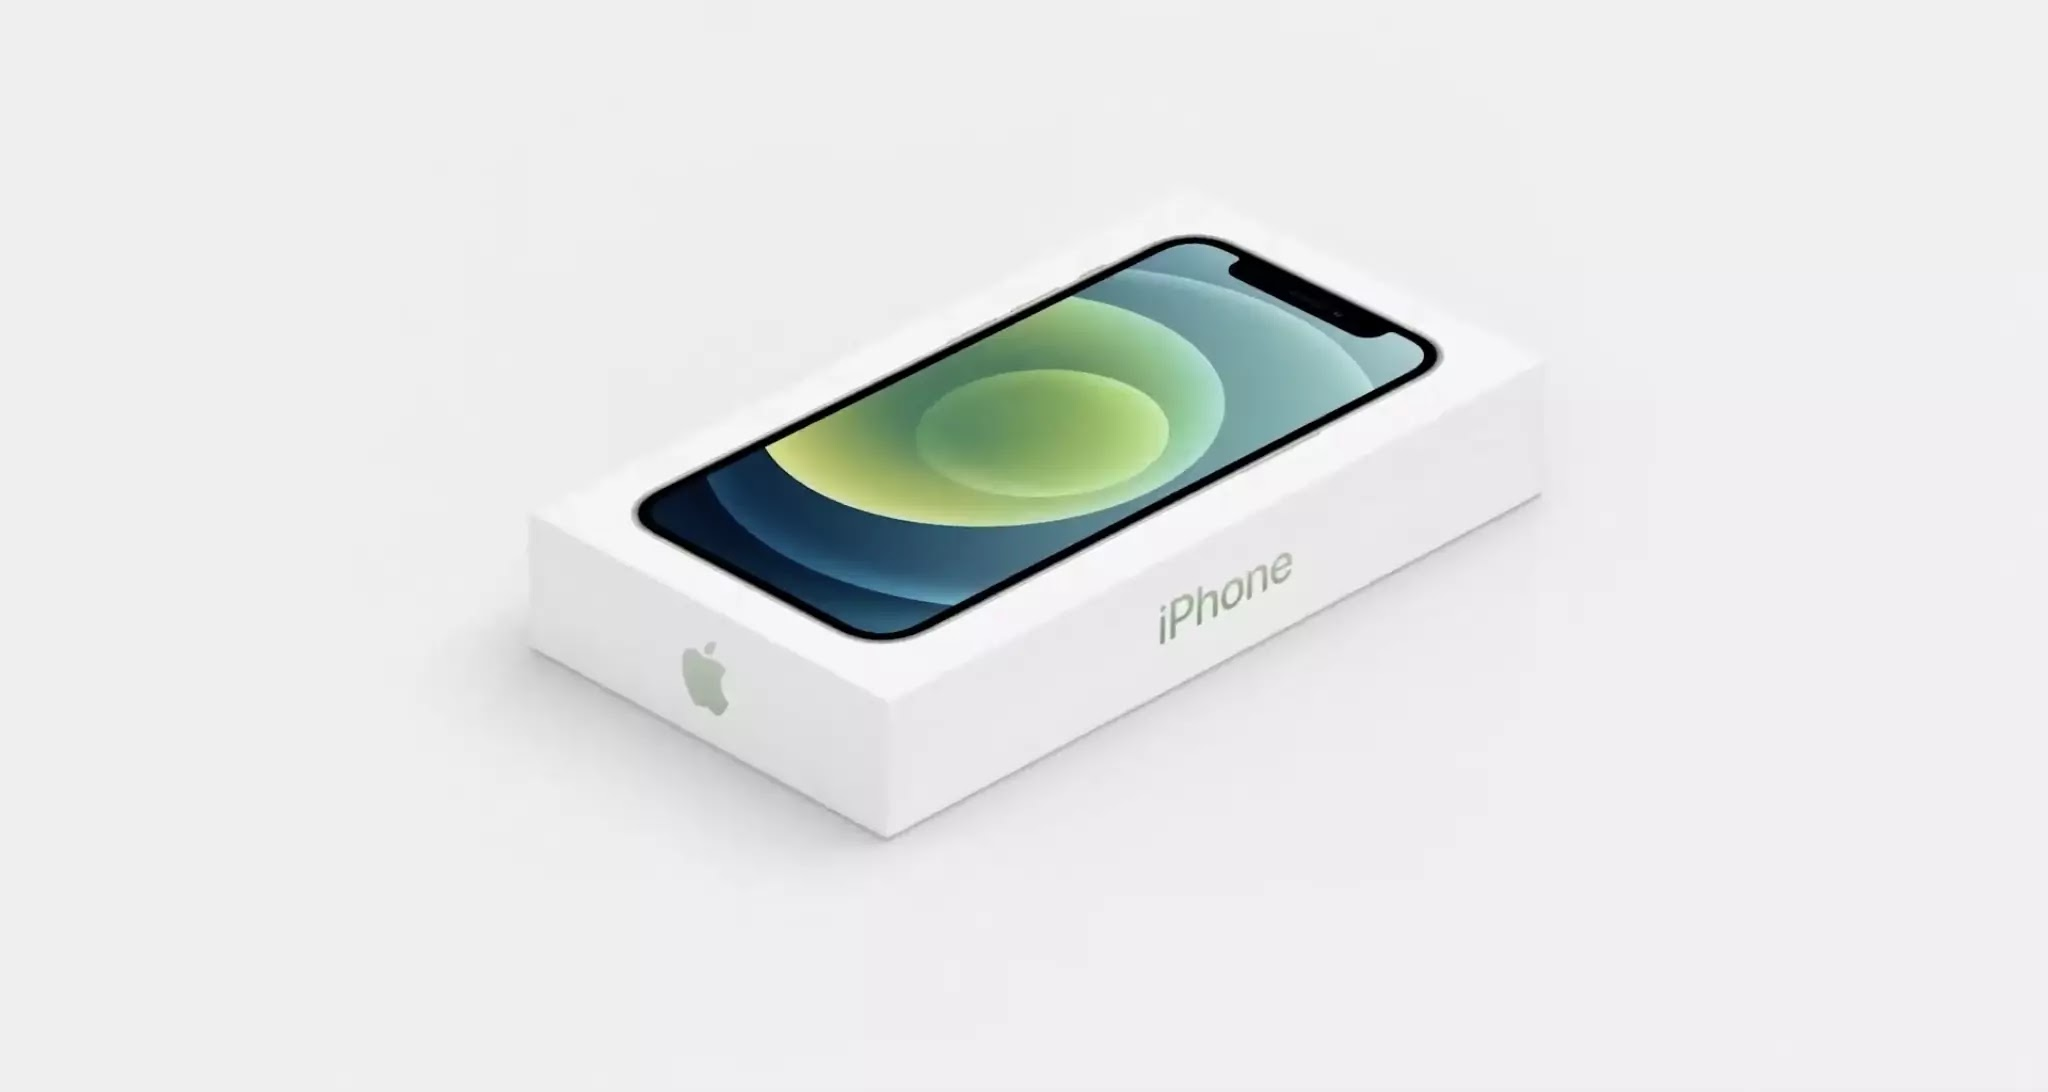 whats-in-the-box-of-iphone-11-pro-max